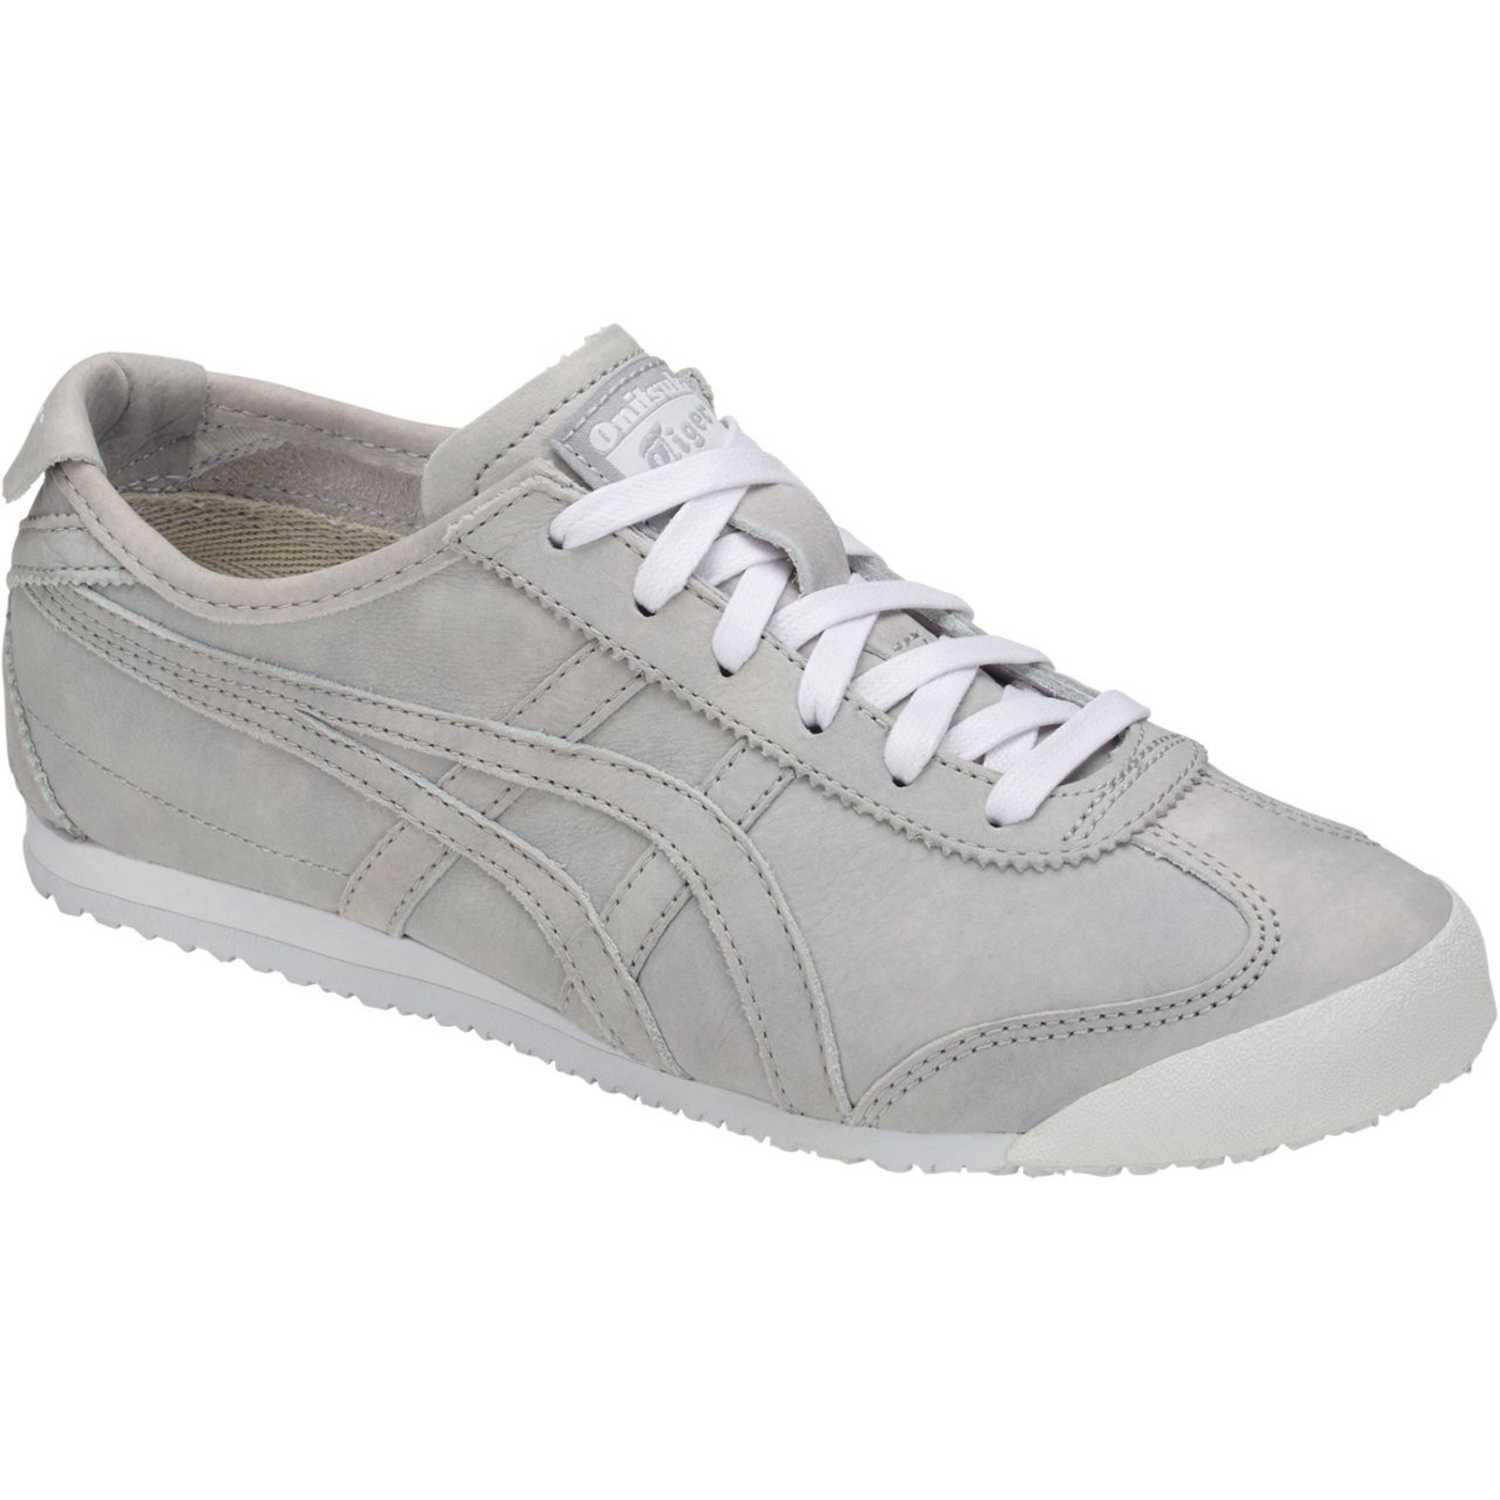 Asics mexico 66 Gris / blanco Walking